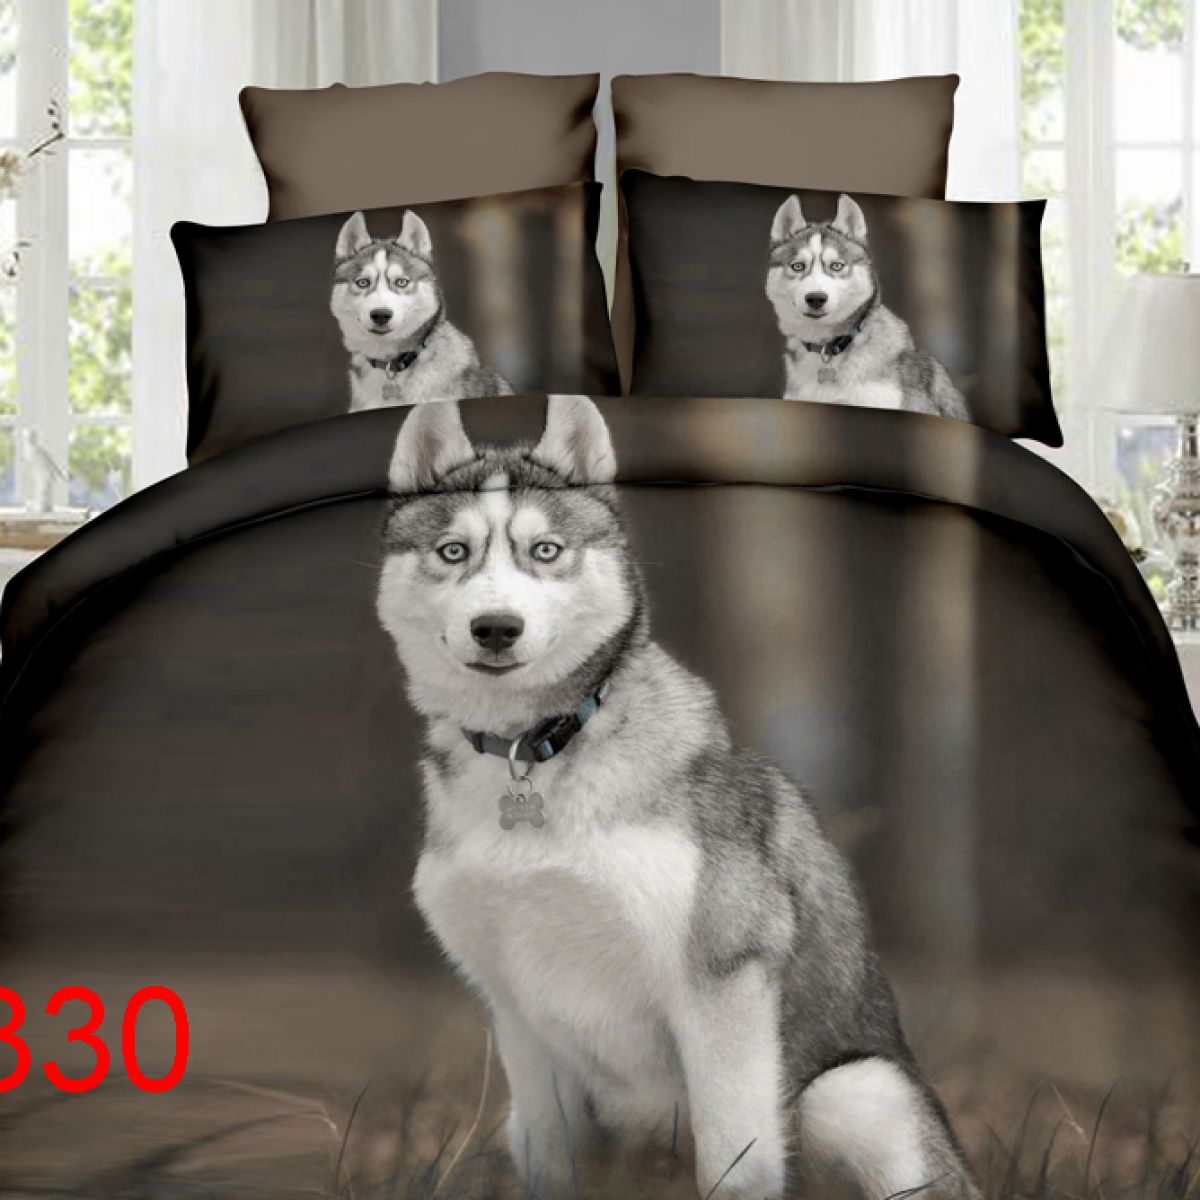 3D Beddings - Antonio - AML-330z - 160x200 cm - 4 pcs